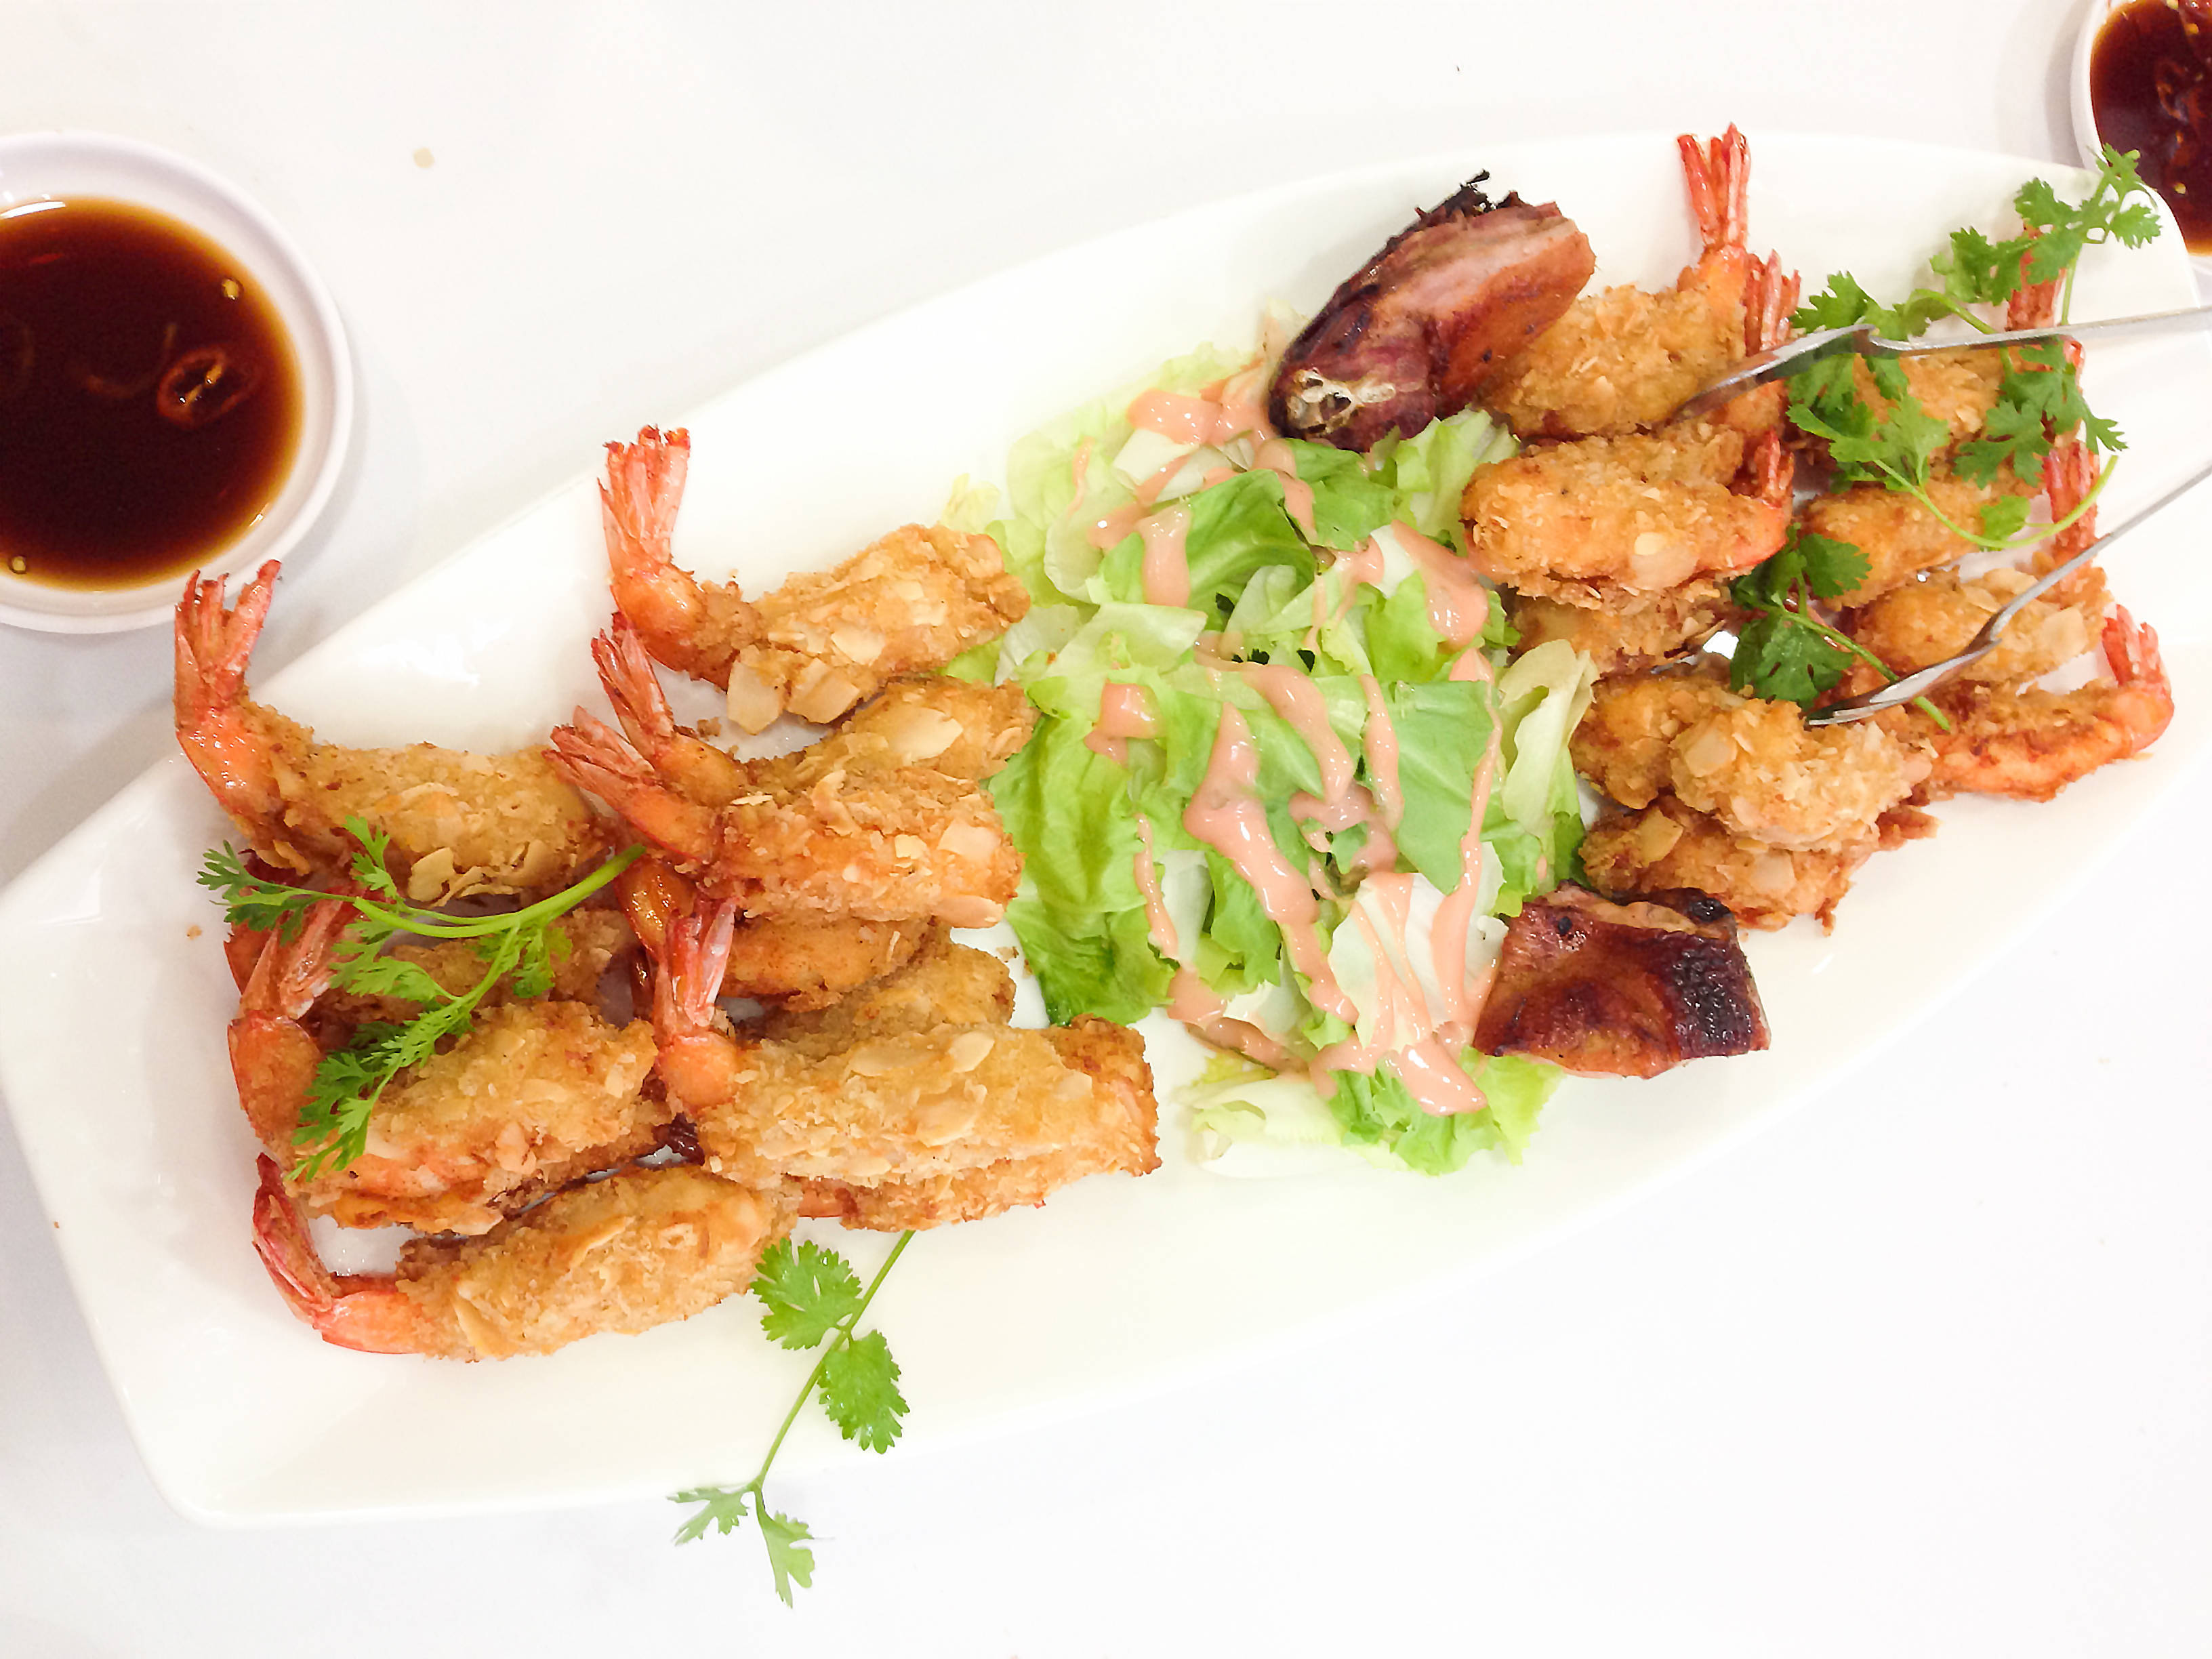 Fried shrimps with almonds